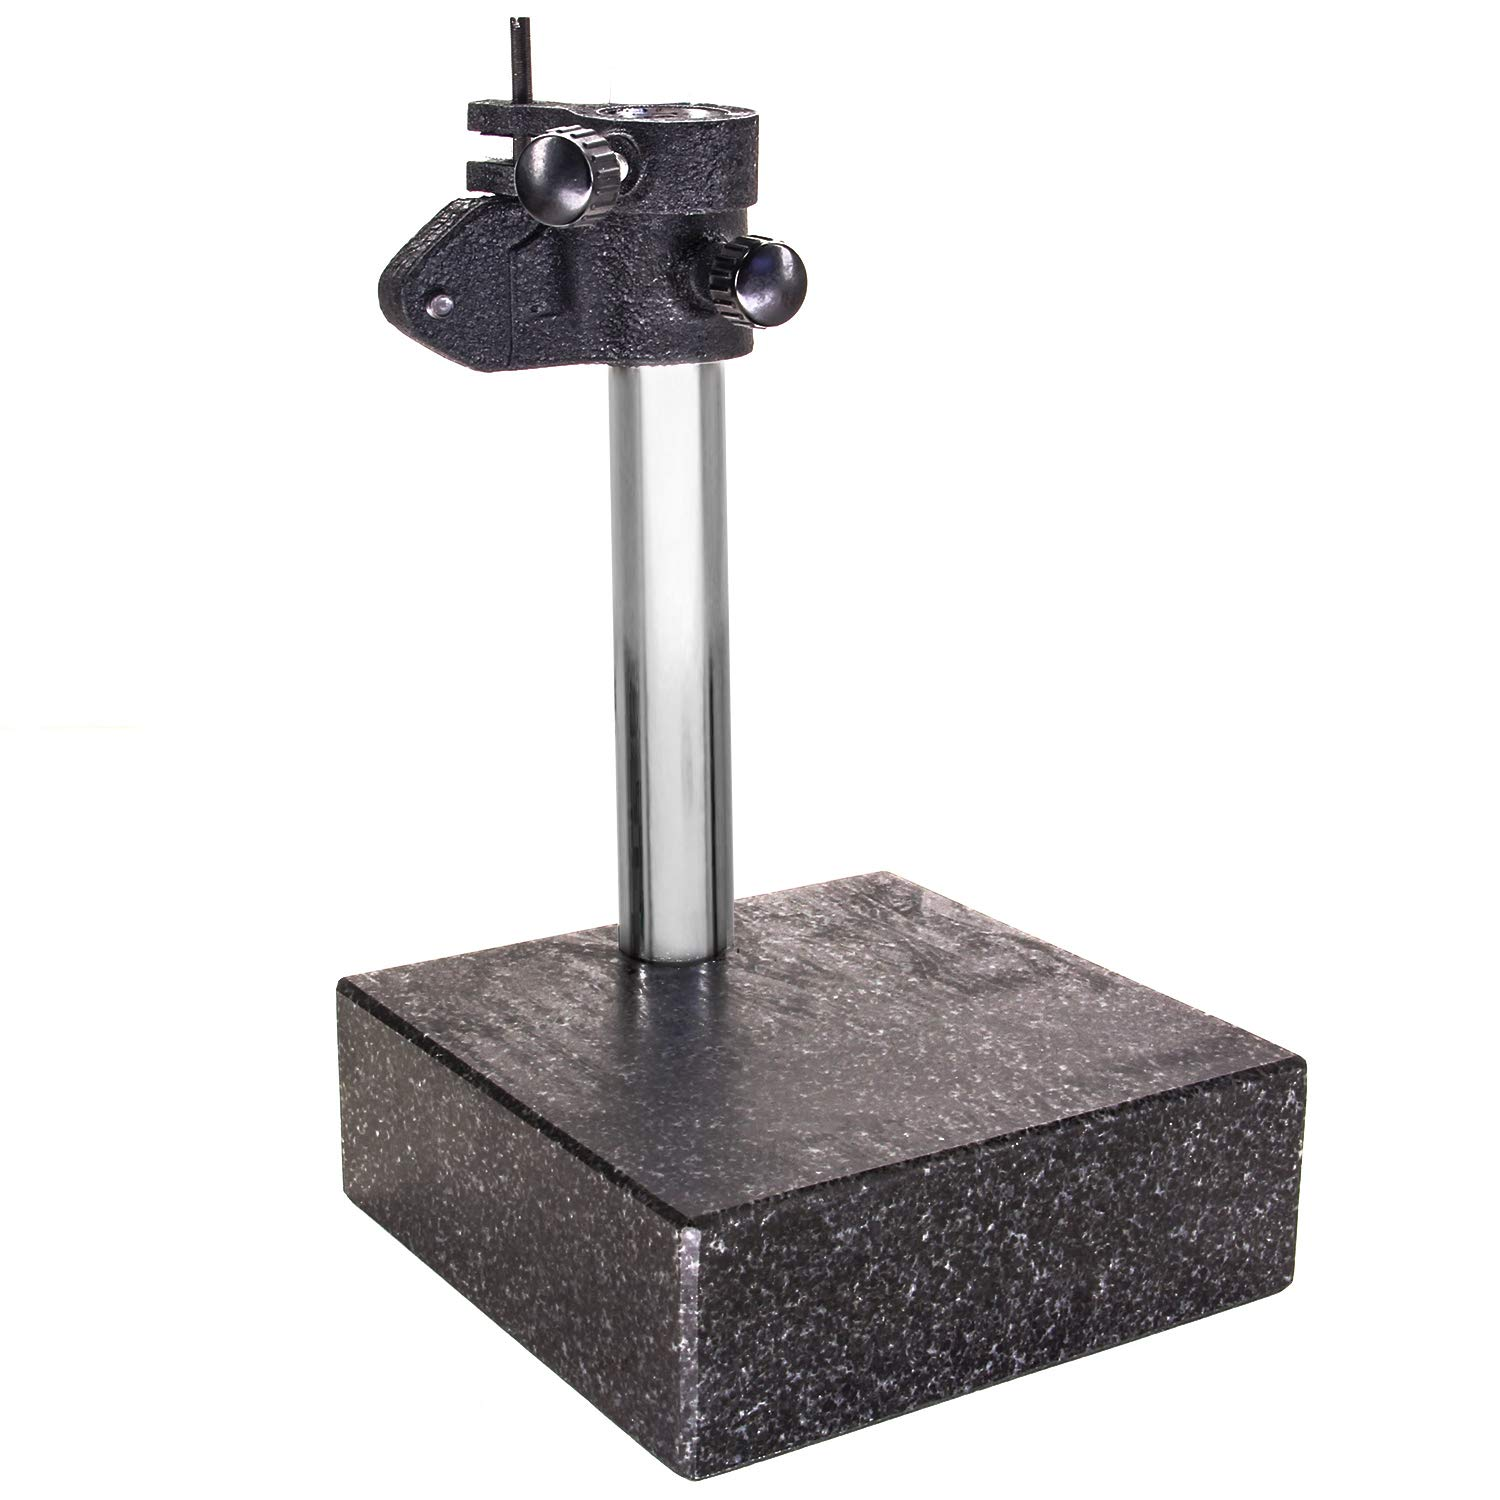 HFS (R) GRANITE SURFACE CHECK COMPARATOR STAND PLATE 6'' x 6'' x 2'' BASE, 10'' Column by HFS